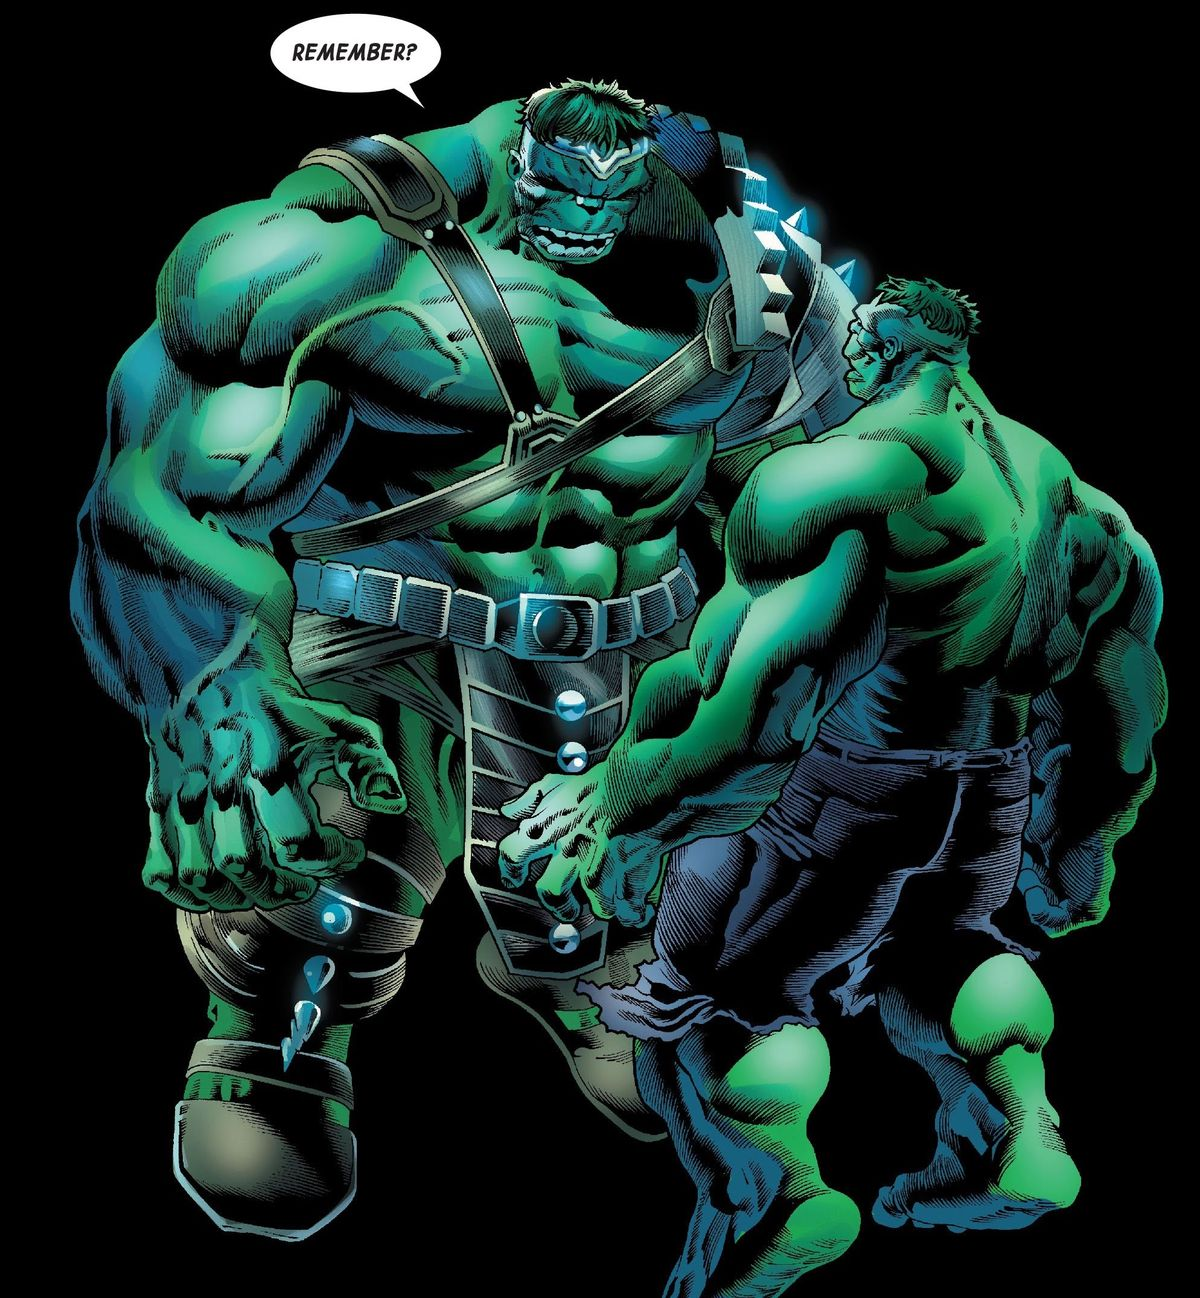 The Green Scar Hulk personality appears before the Savage Hulk in Bruce Banner's mindscape, in Immortal Hulk #32, Marvel Comics (2020).